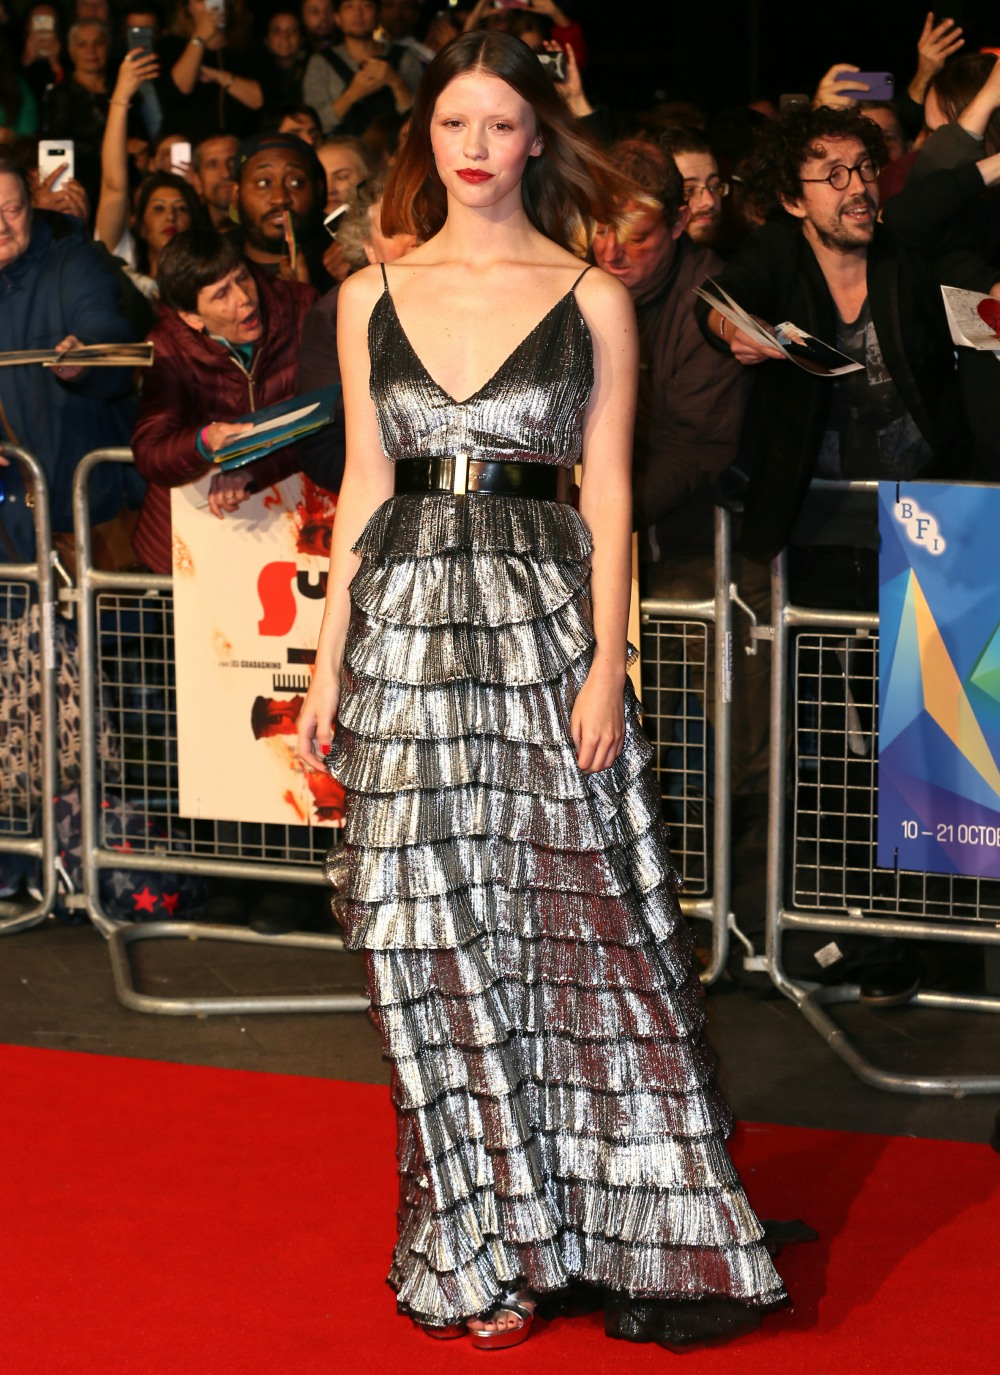 The BFI 62nd London Film Festival UK Premiere of 'Suspiria' held at the Cineworld Leicester Square - Arrivals